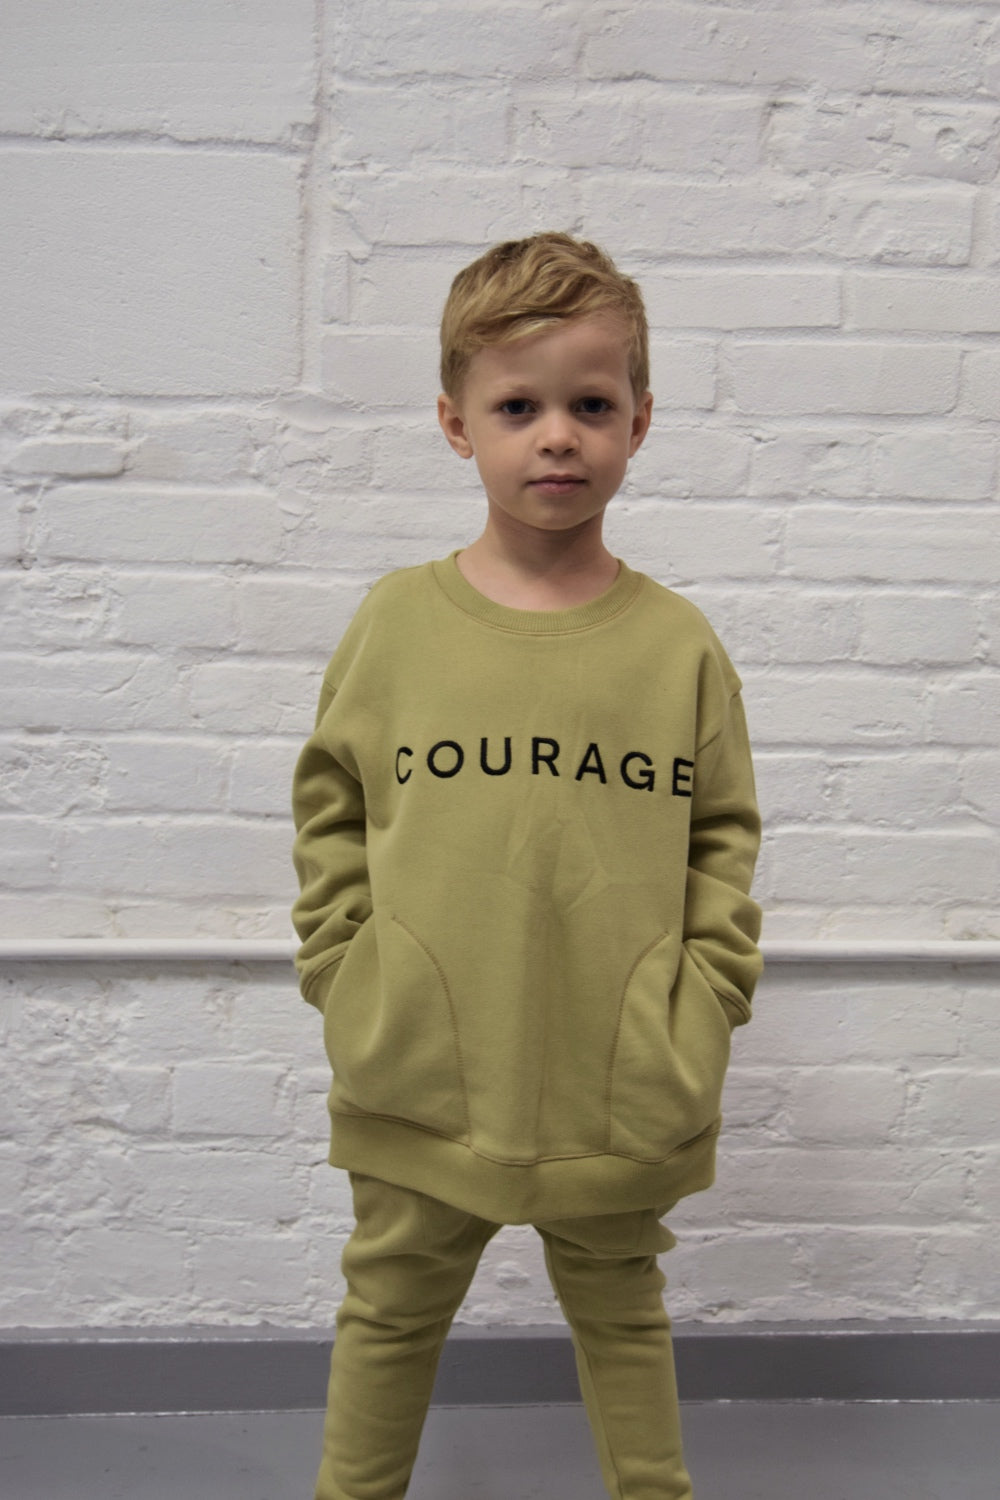 JAX & HEDLEY Courage Sweatshirt - Last One!! Size: 4-5Y